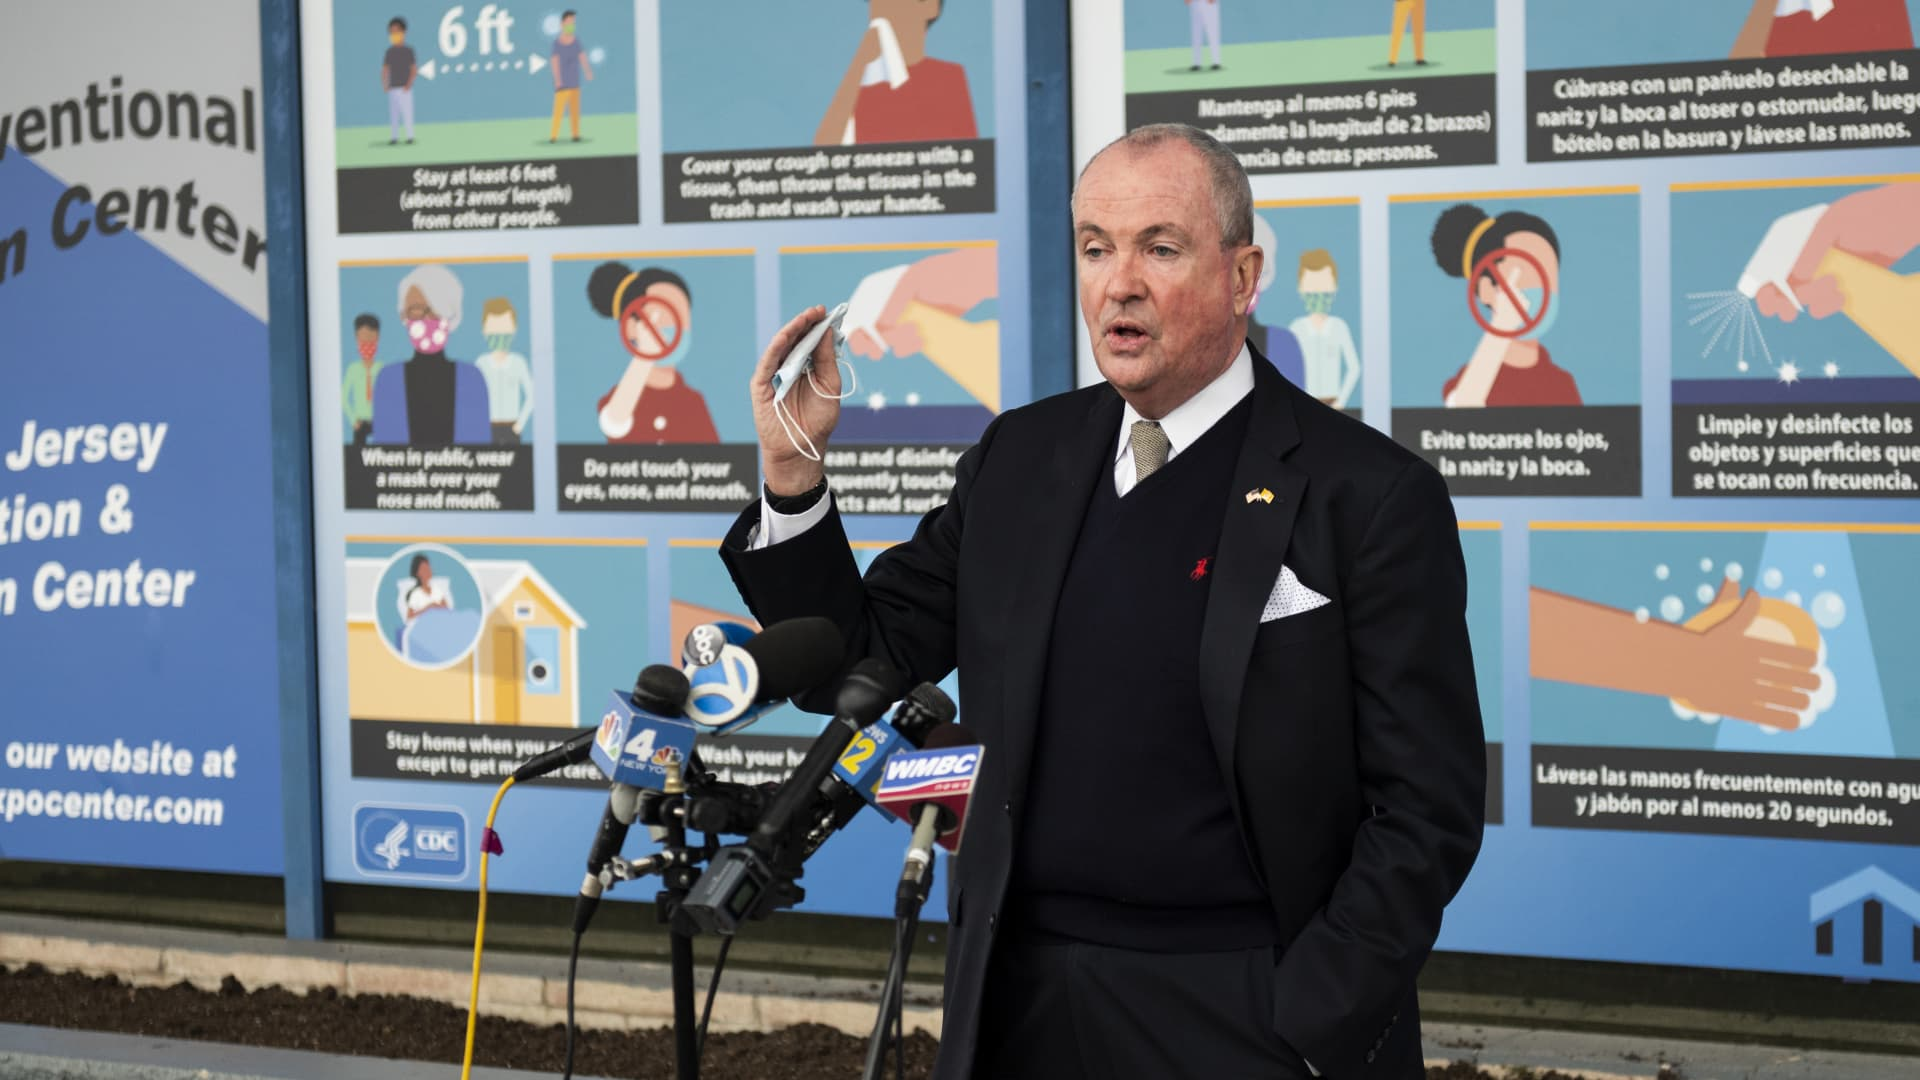 Phil Murphy, New Jersey's governor, speaks at a news conference after touring the New Jersey Convention and Exposition Center Covid-19 vaccination site in Edison, New Jersey, on Friday, Jan. 15, 2021.